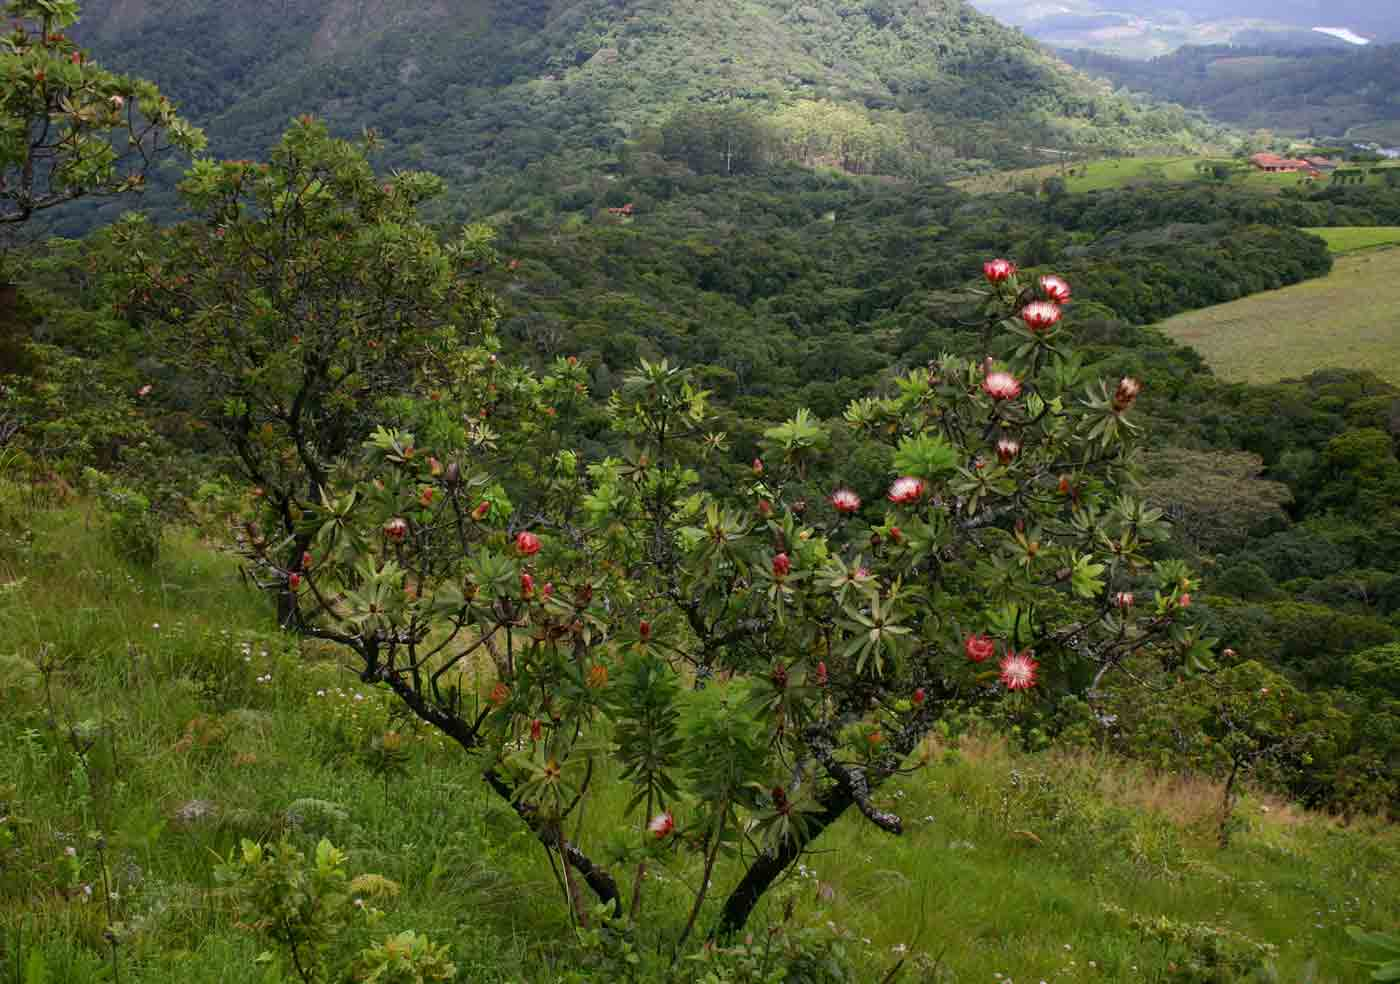 Protea caffra on the slopes above Cloudlands Forest, one of the few woody species in the grasslands